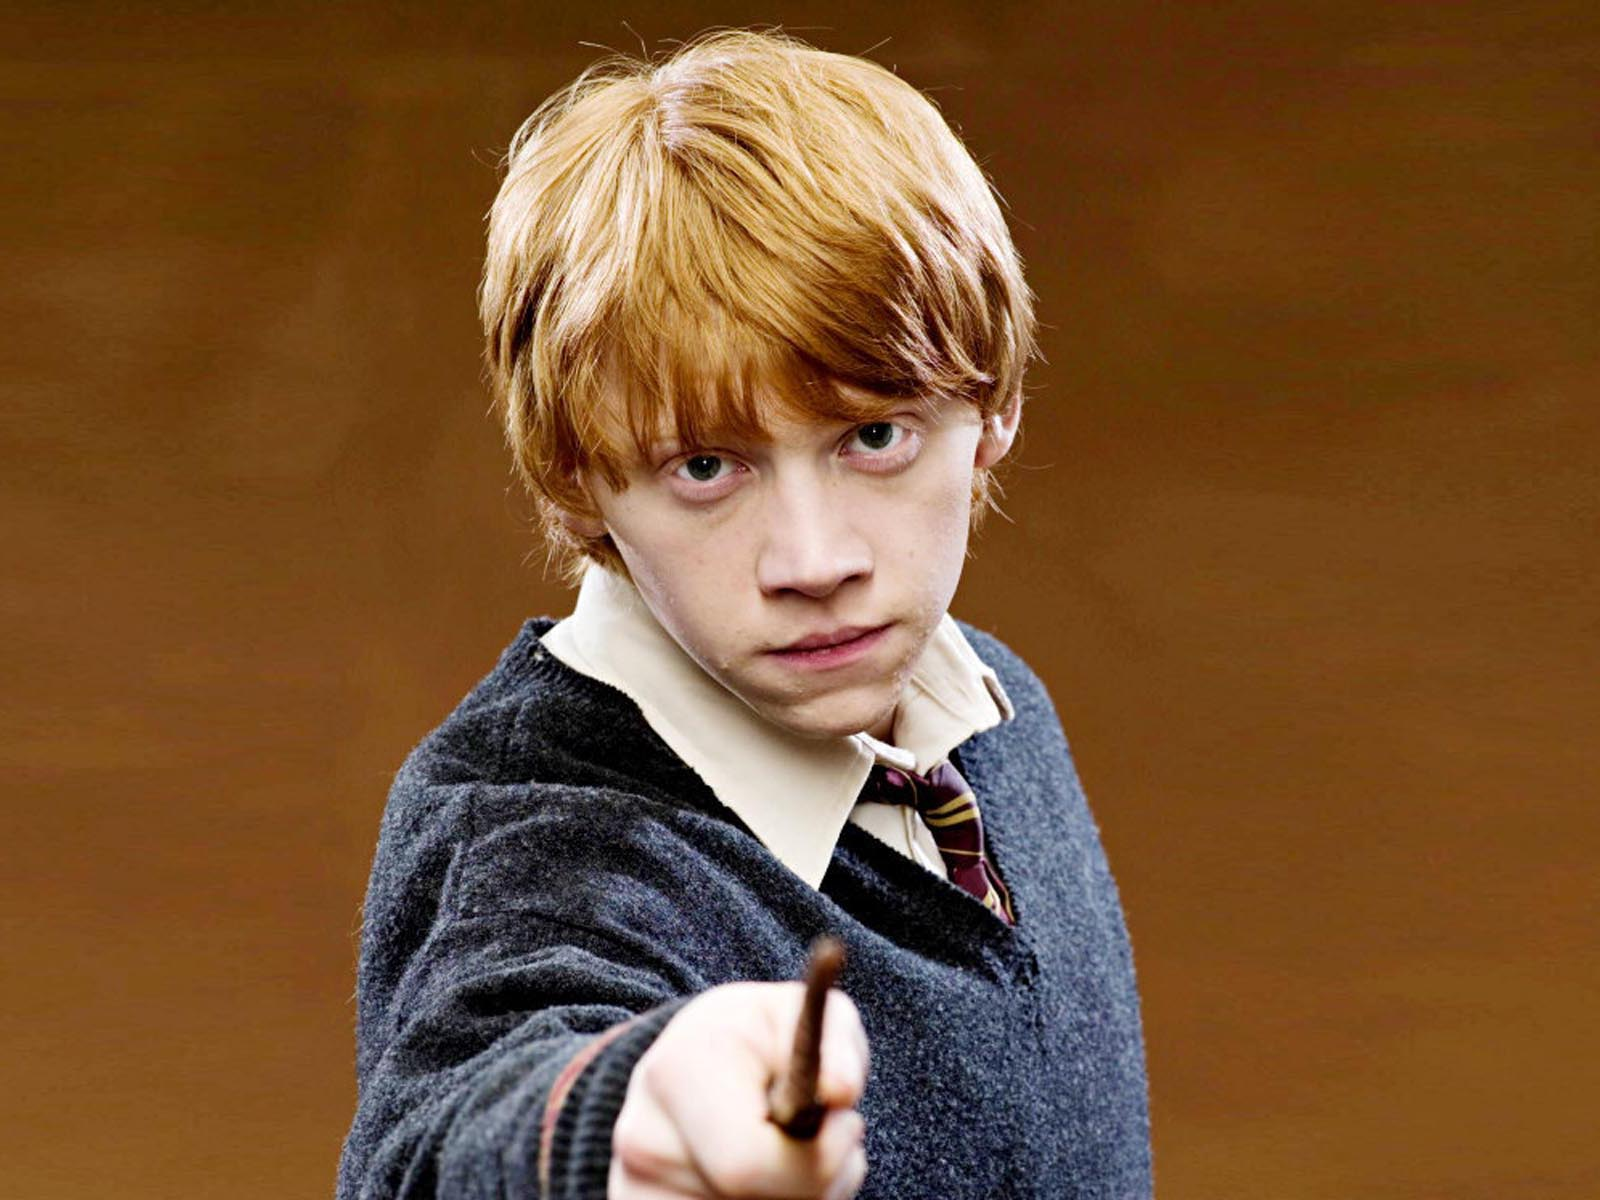 New Amazing Rupert Grint hd wallpaper Wallpaper